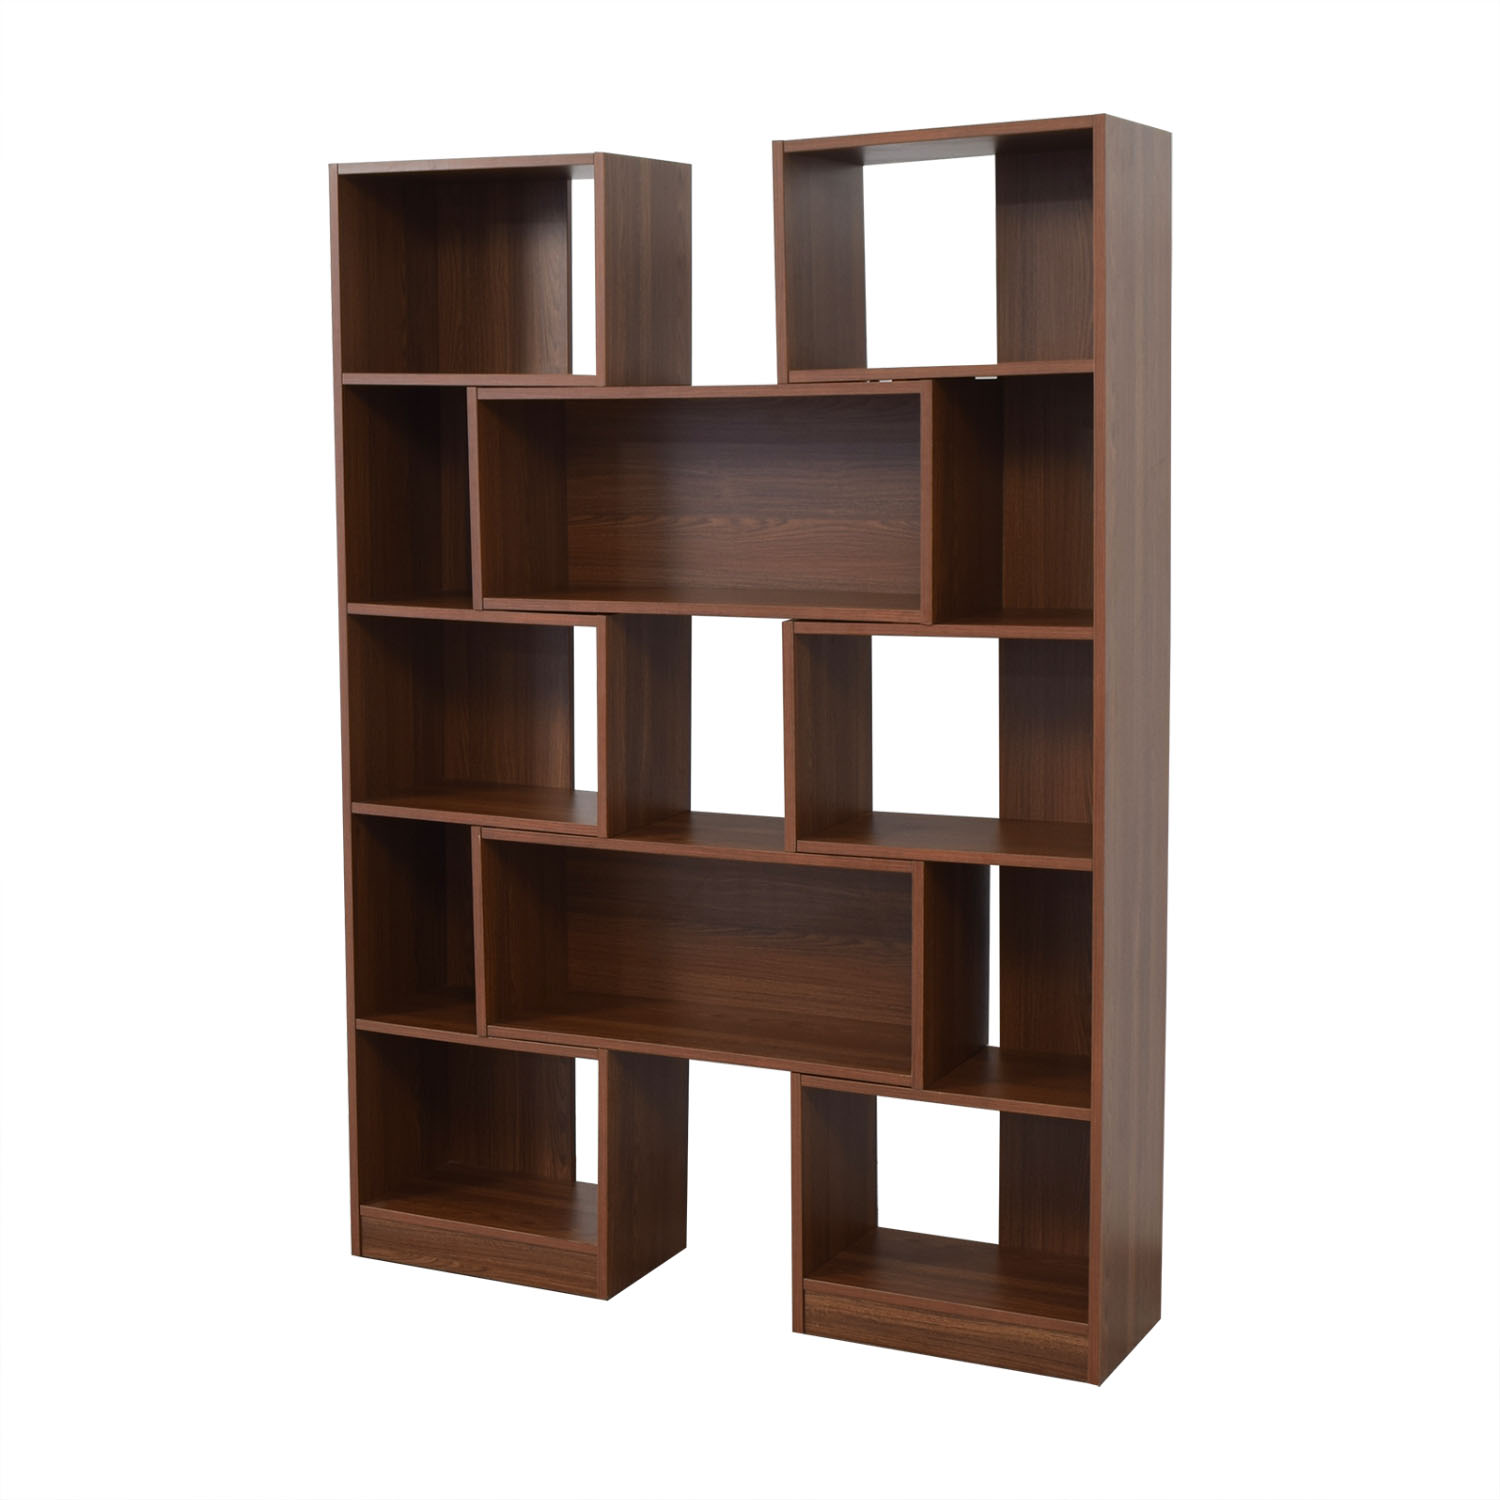 Crate & Barrel Puzzle Bookshelf Crate & Barrel